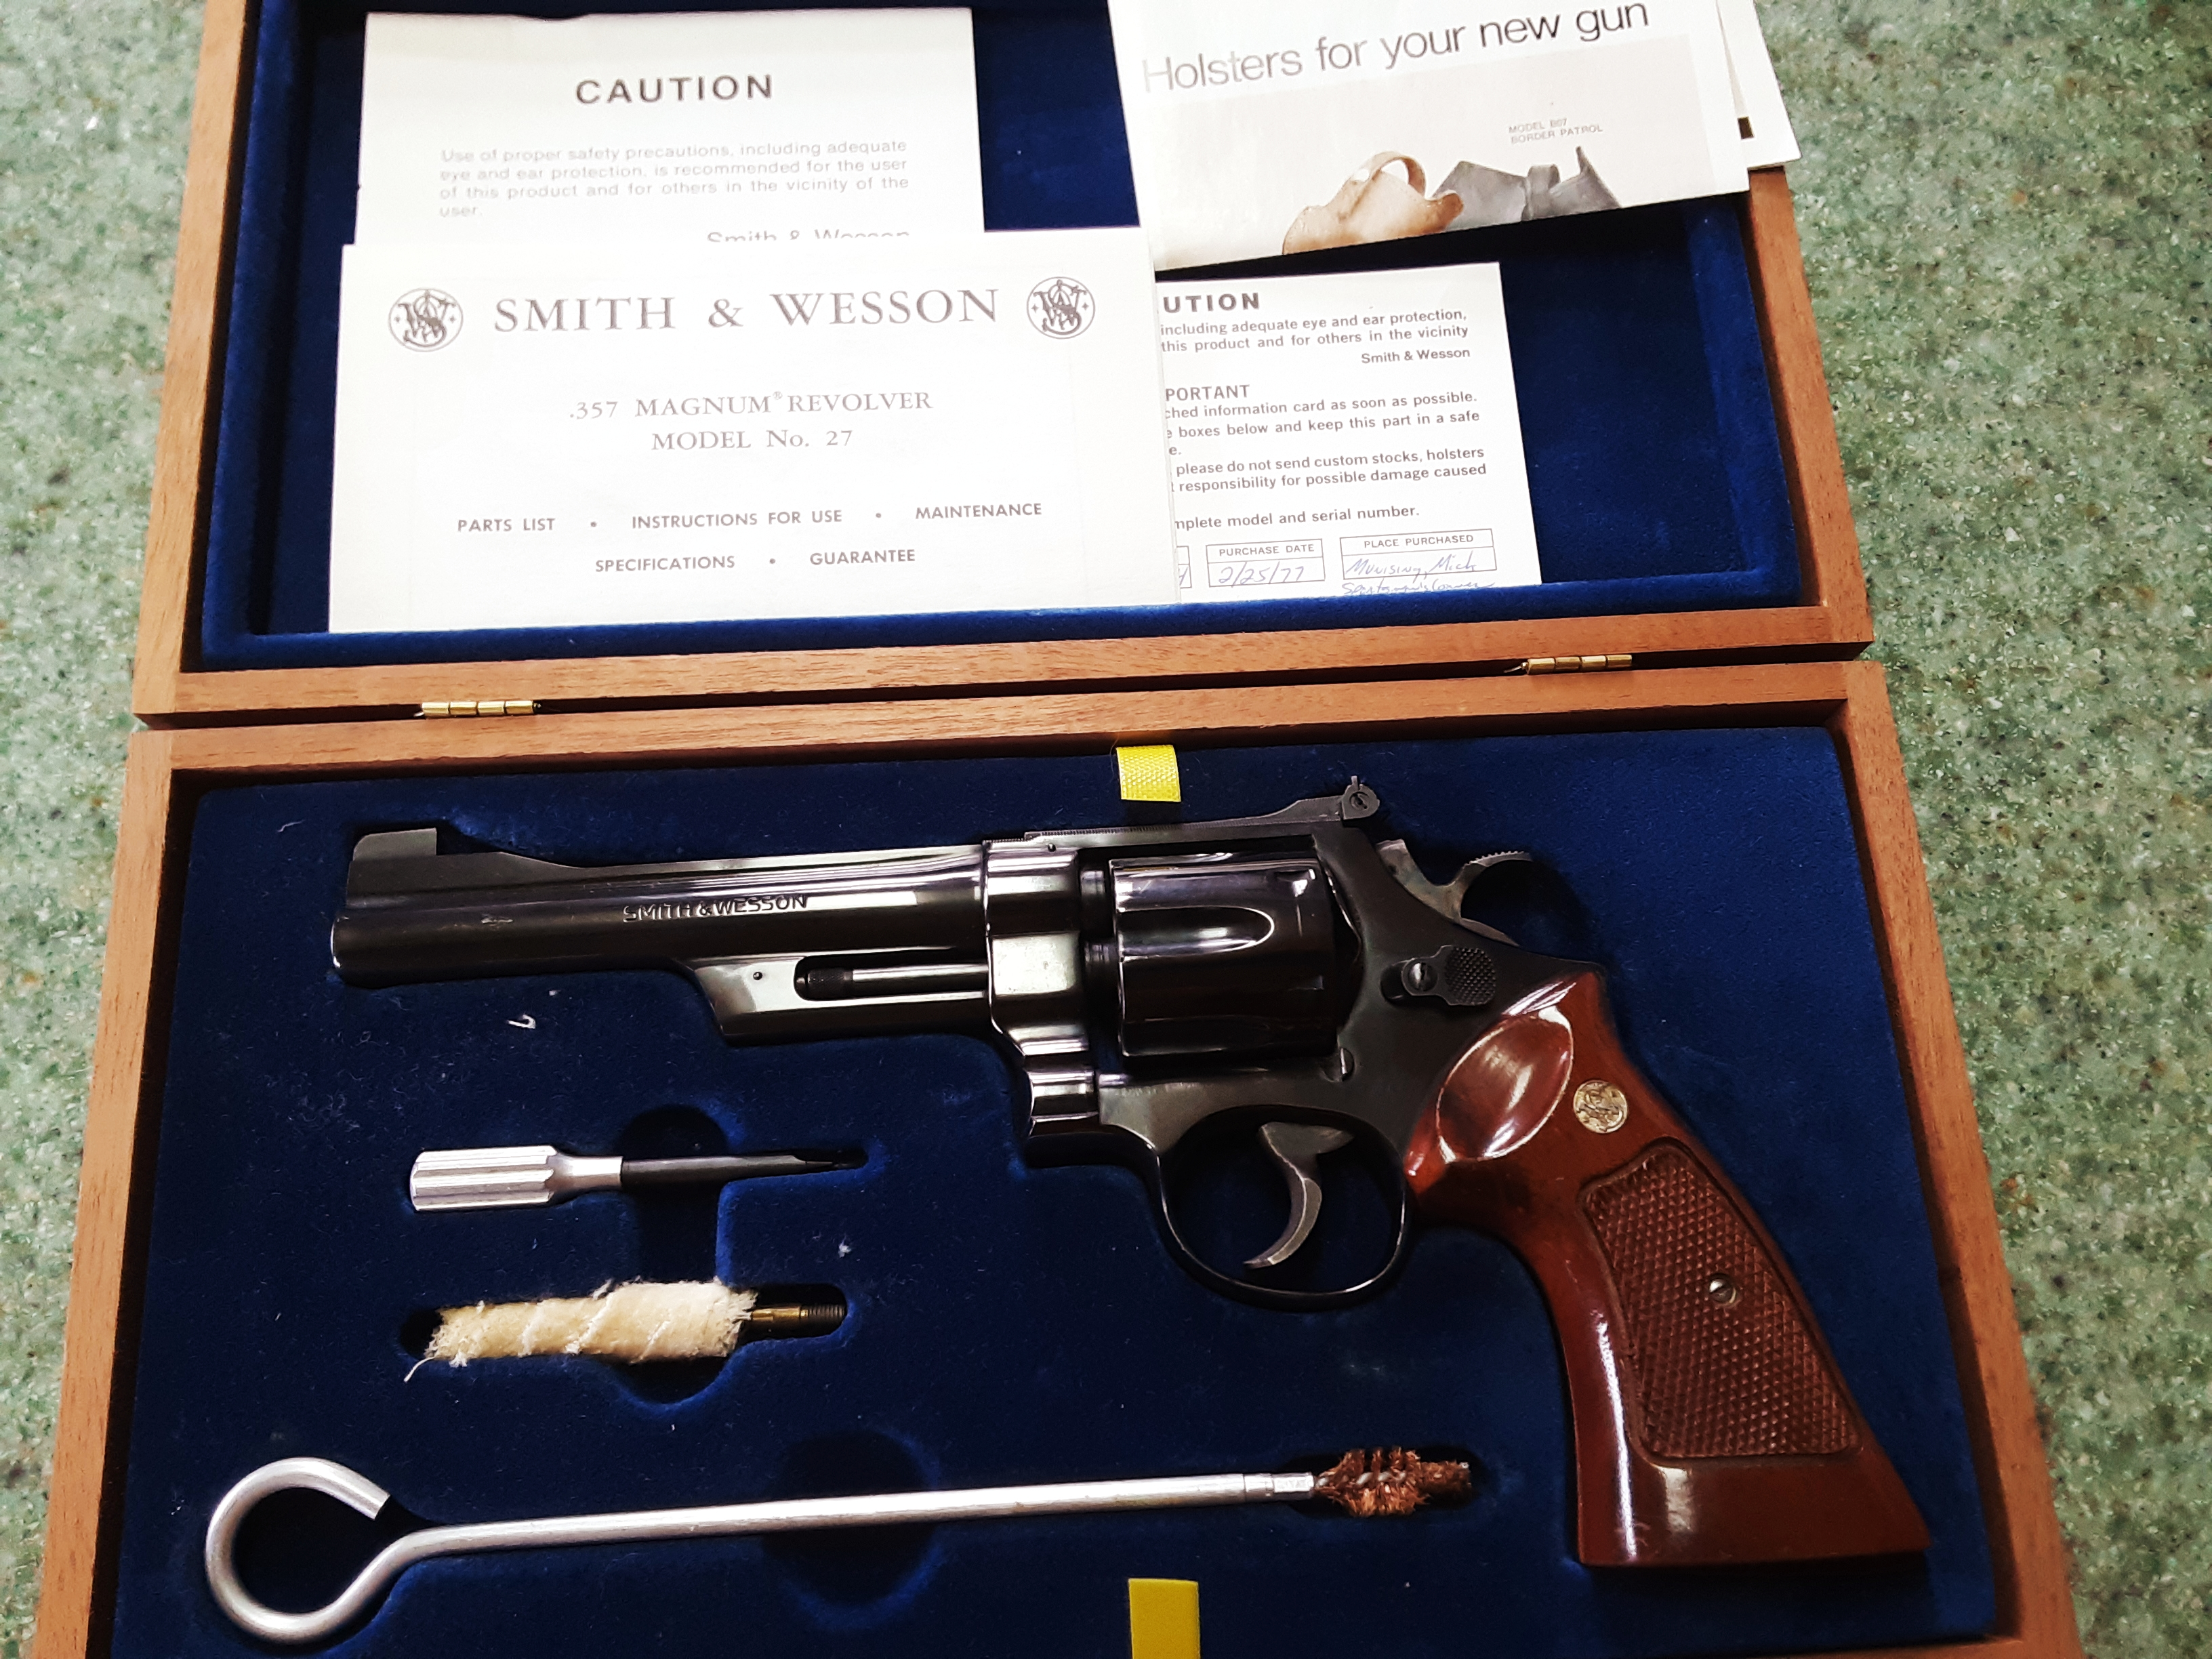 Smith & Wesson 27-2-20191026_200609.jpg